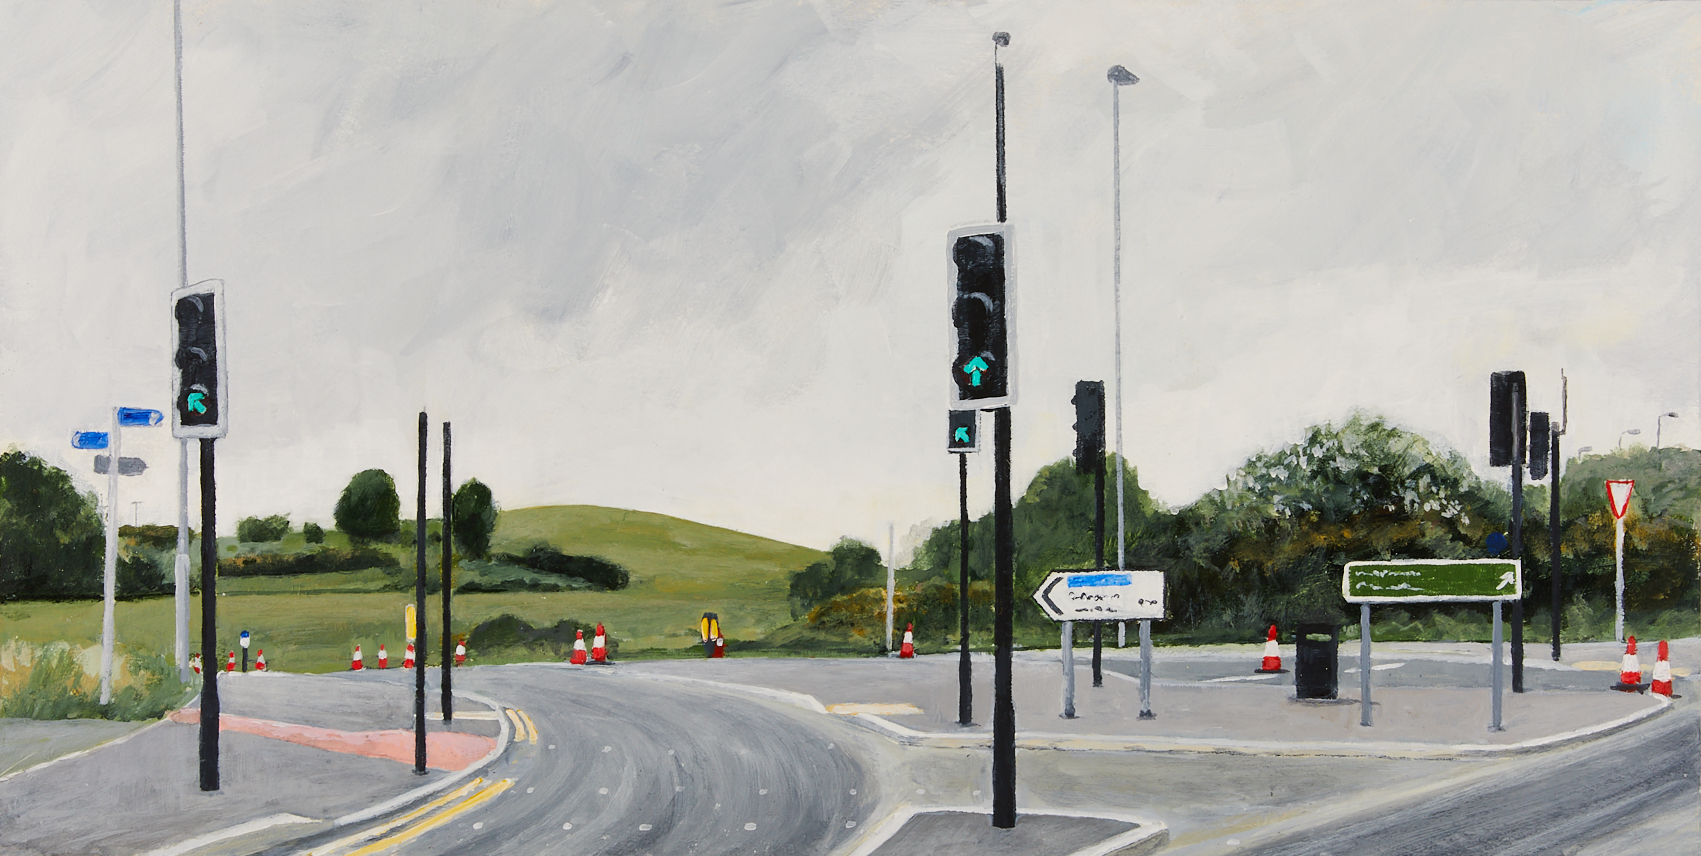 28 Monday 4th May - Mount 'Tarry by it' from the junction of Black Road and Doncaster Road